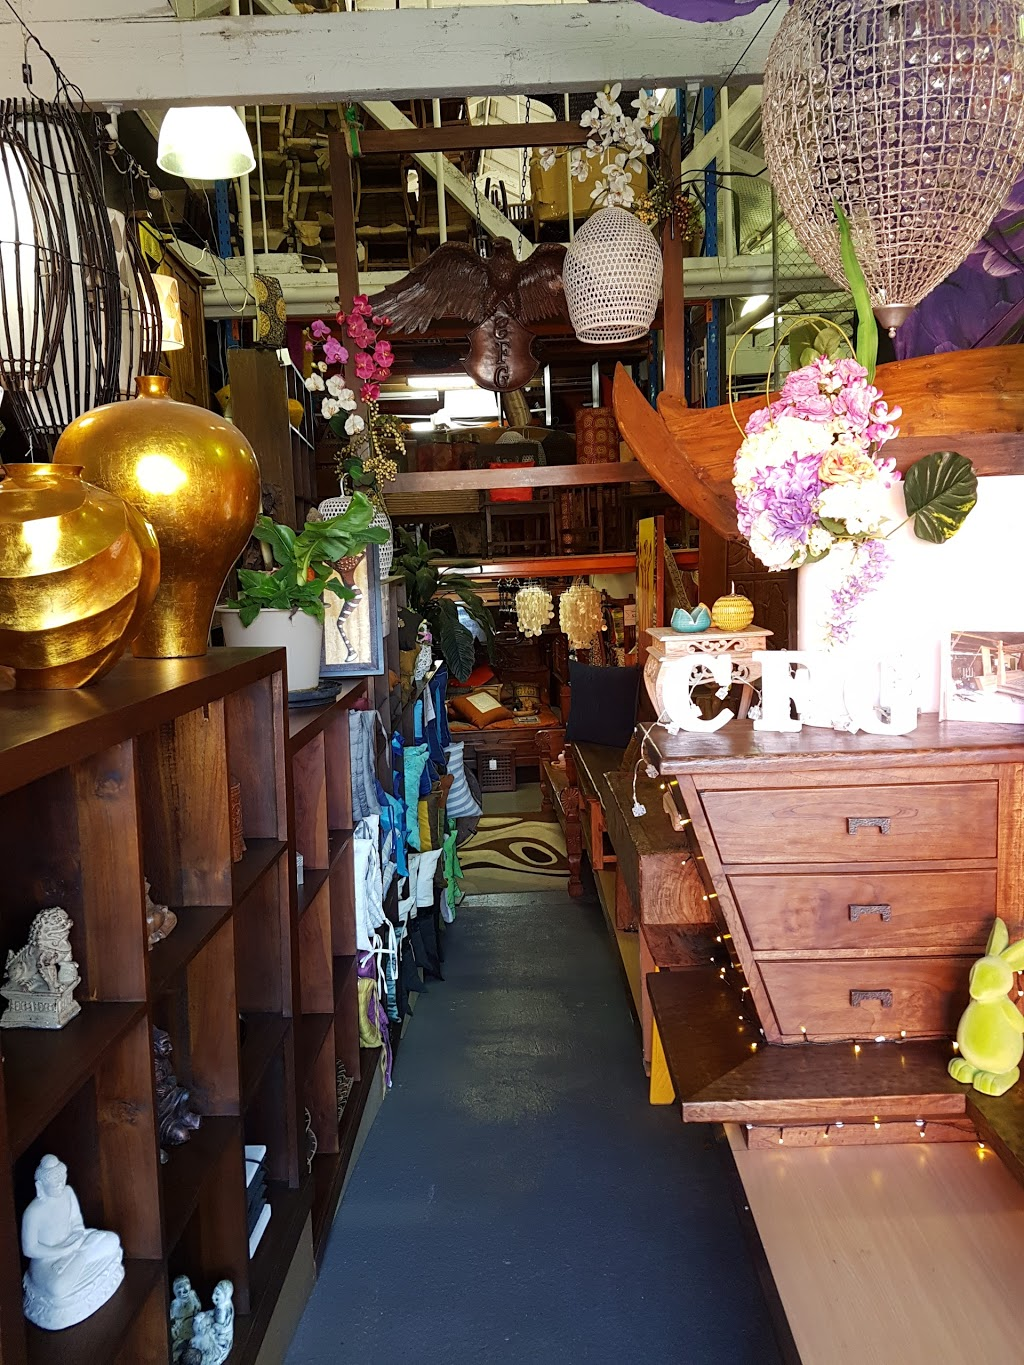 Classic Furniture Gallery | home goods store | 51 Brodie St, Rydalmere NSW 2116, Australia | 0286685718 OR +61 2 8668 5718